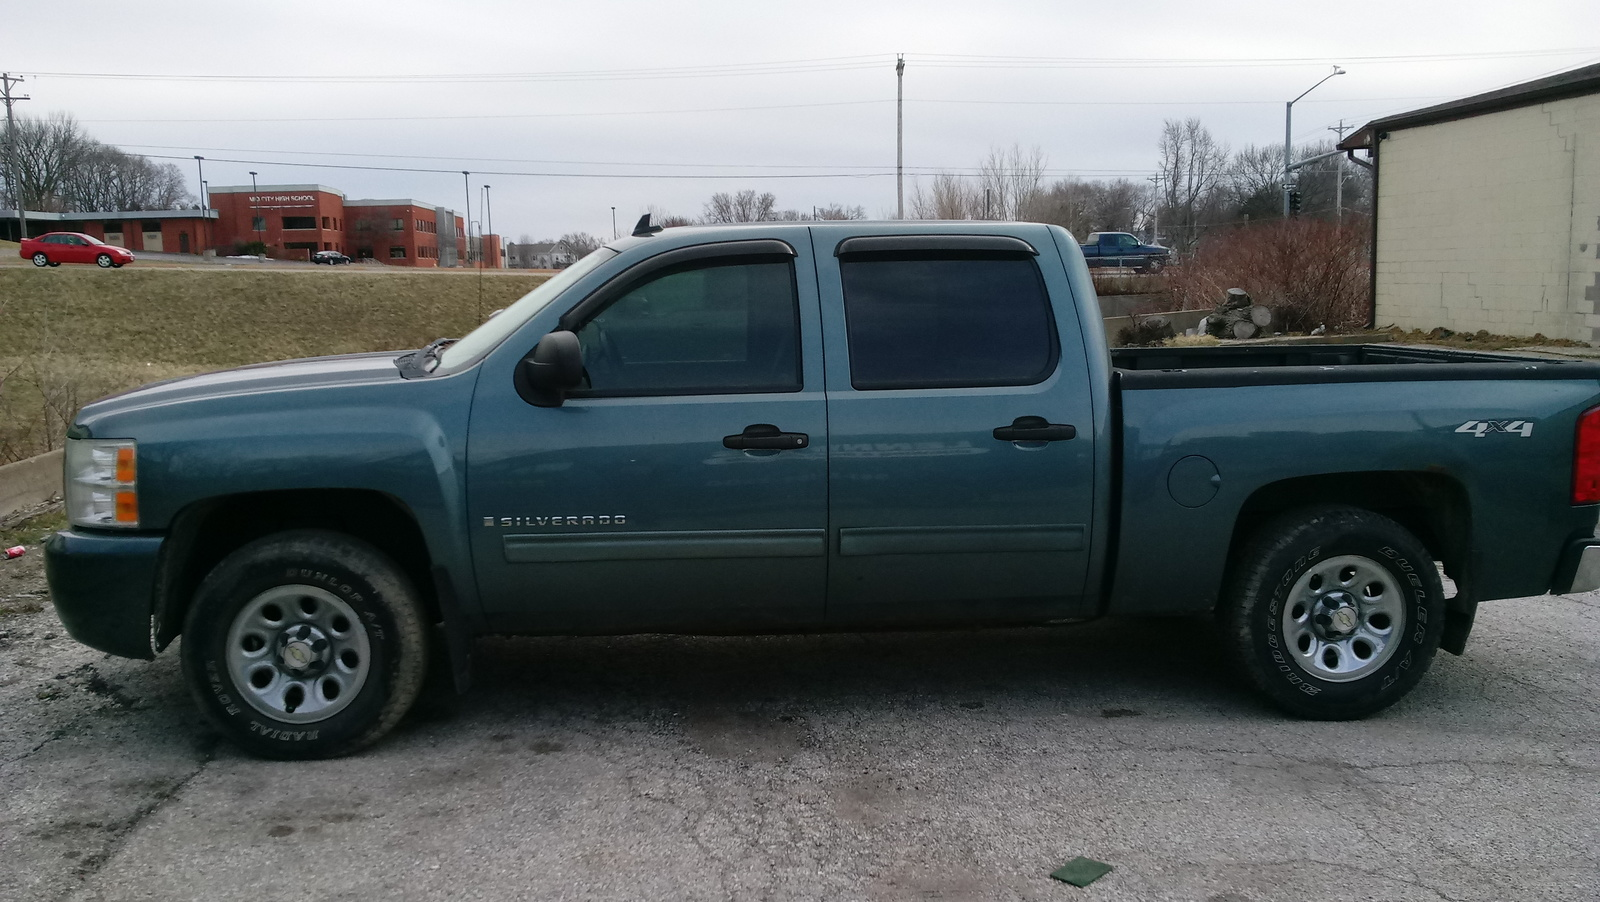 chevrolet silverado 1500 questions truck wont move in drive or in 3rd but park reverse. Black Bedroom Furniture Sets. Home Design Ideas